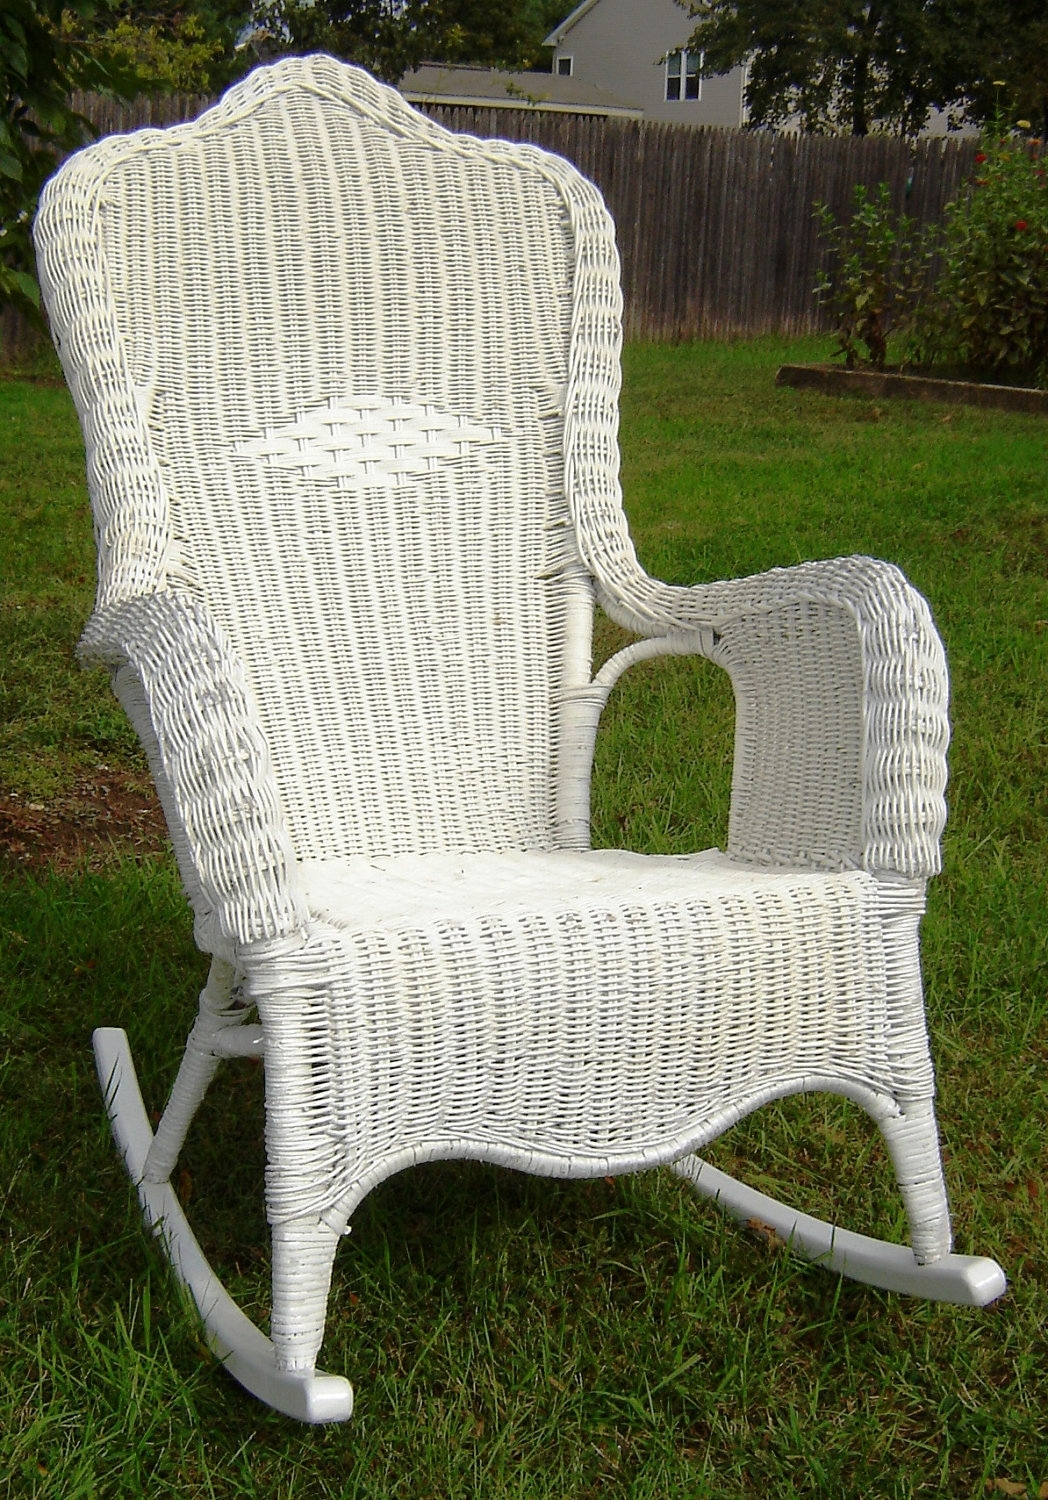 Chair Design Ideas Best Vintage Wicker Chairs Home Antique Cane Intended For Recent Antique Wicker Rocking Chairs With Springs (View 8 of 20)